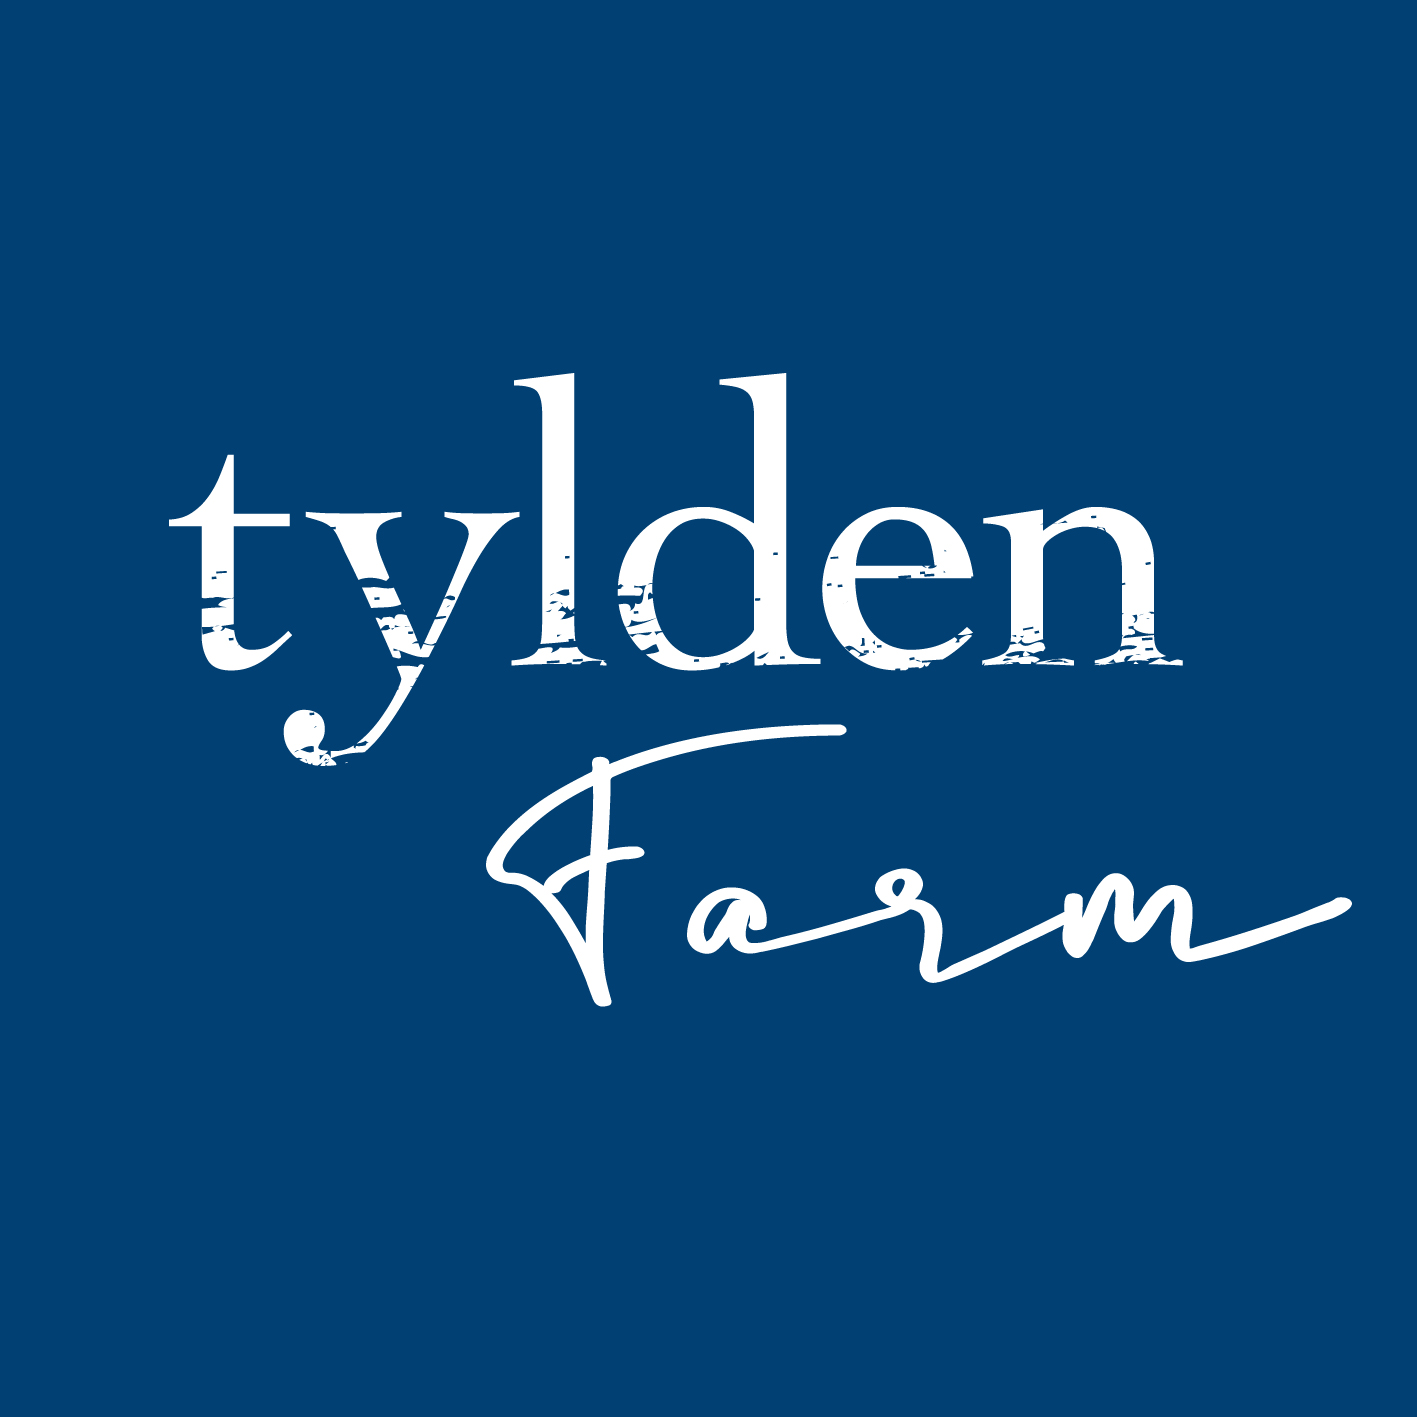 TYLDEN: Cut flowers -retail and wholesale, plus seasonal roadside stall.